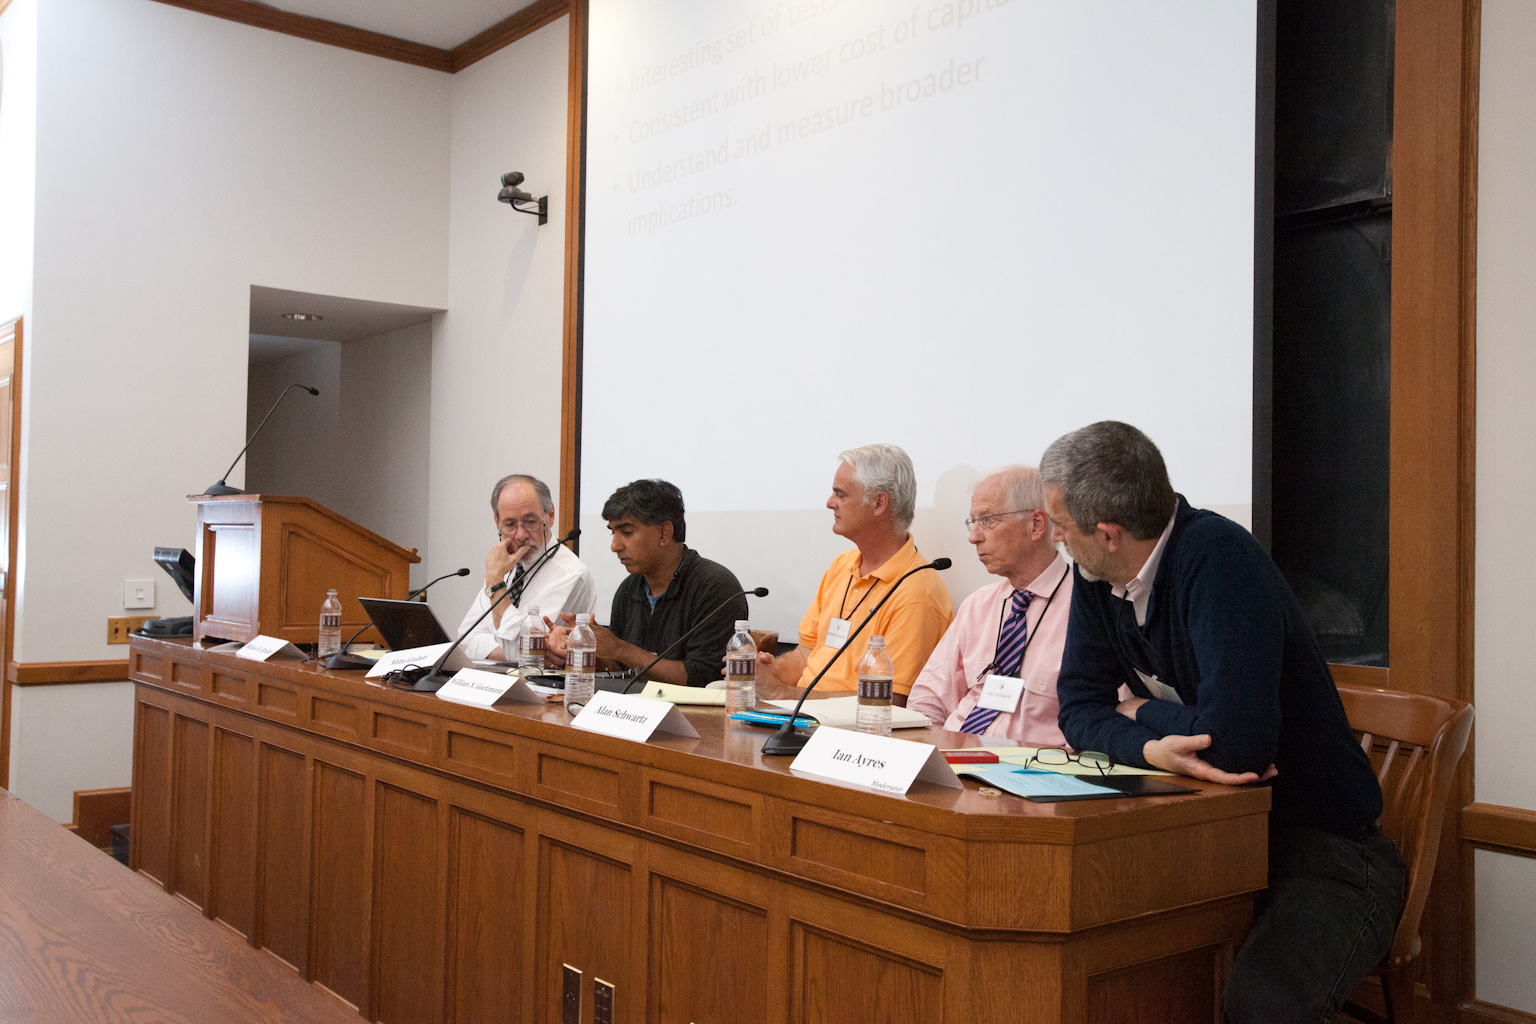 Duke Business and Law Prof. Michael Bradley, Duke Law Prof. Mitu Gulati, Yale SOM Prof. William Goetzmann, and YLS Profs. Alan Schwartz '64 and Ian Ayres '86